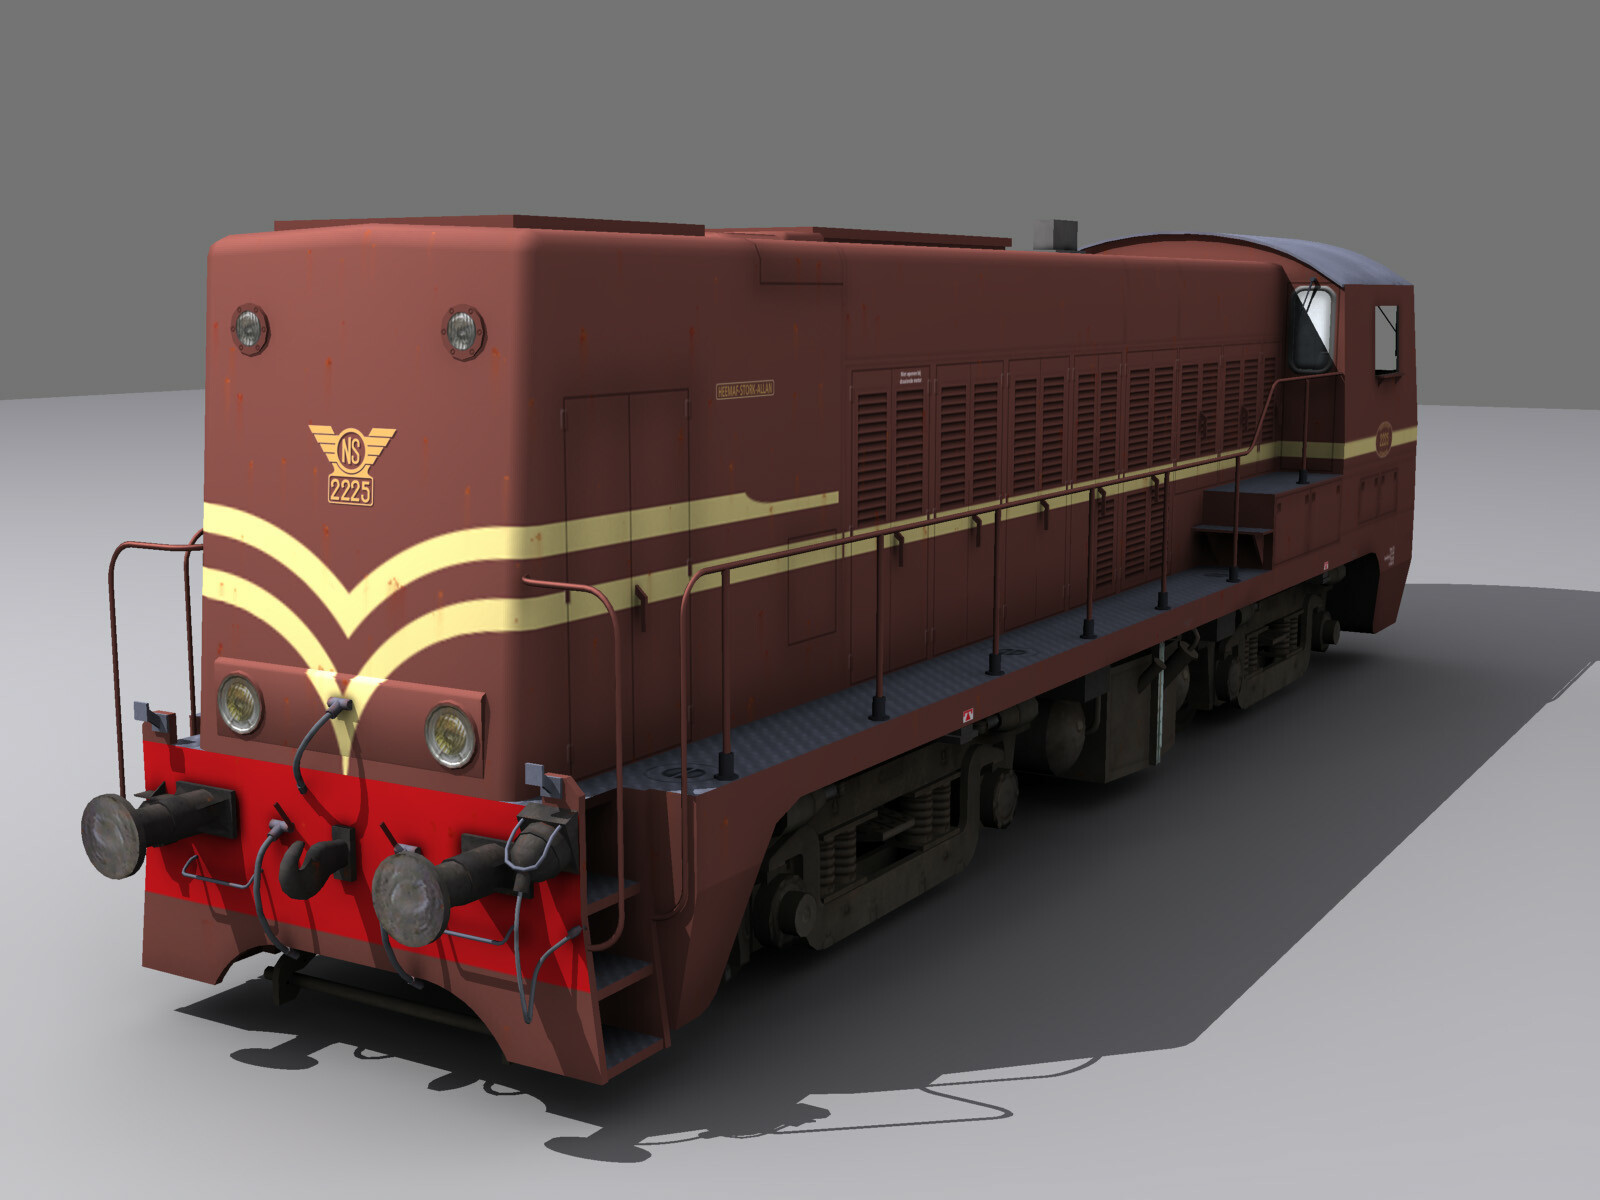 2200 diesel shunter, rendered in 3ds max. Dutch national railways